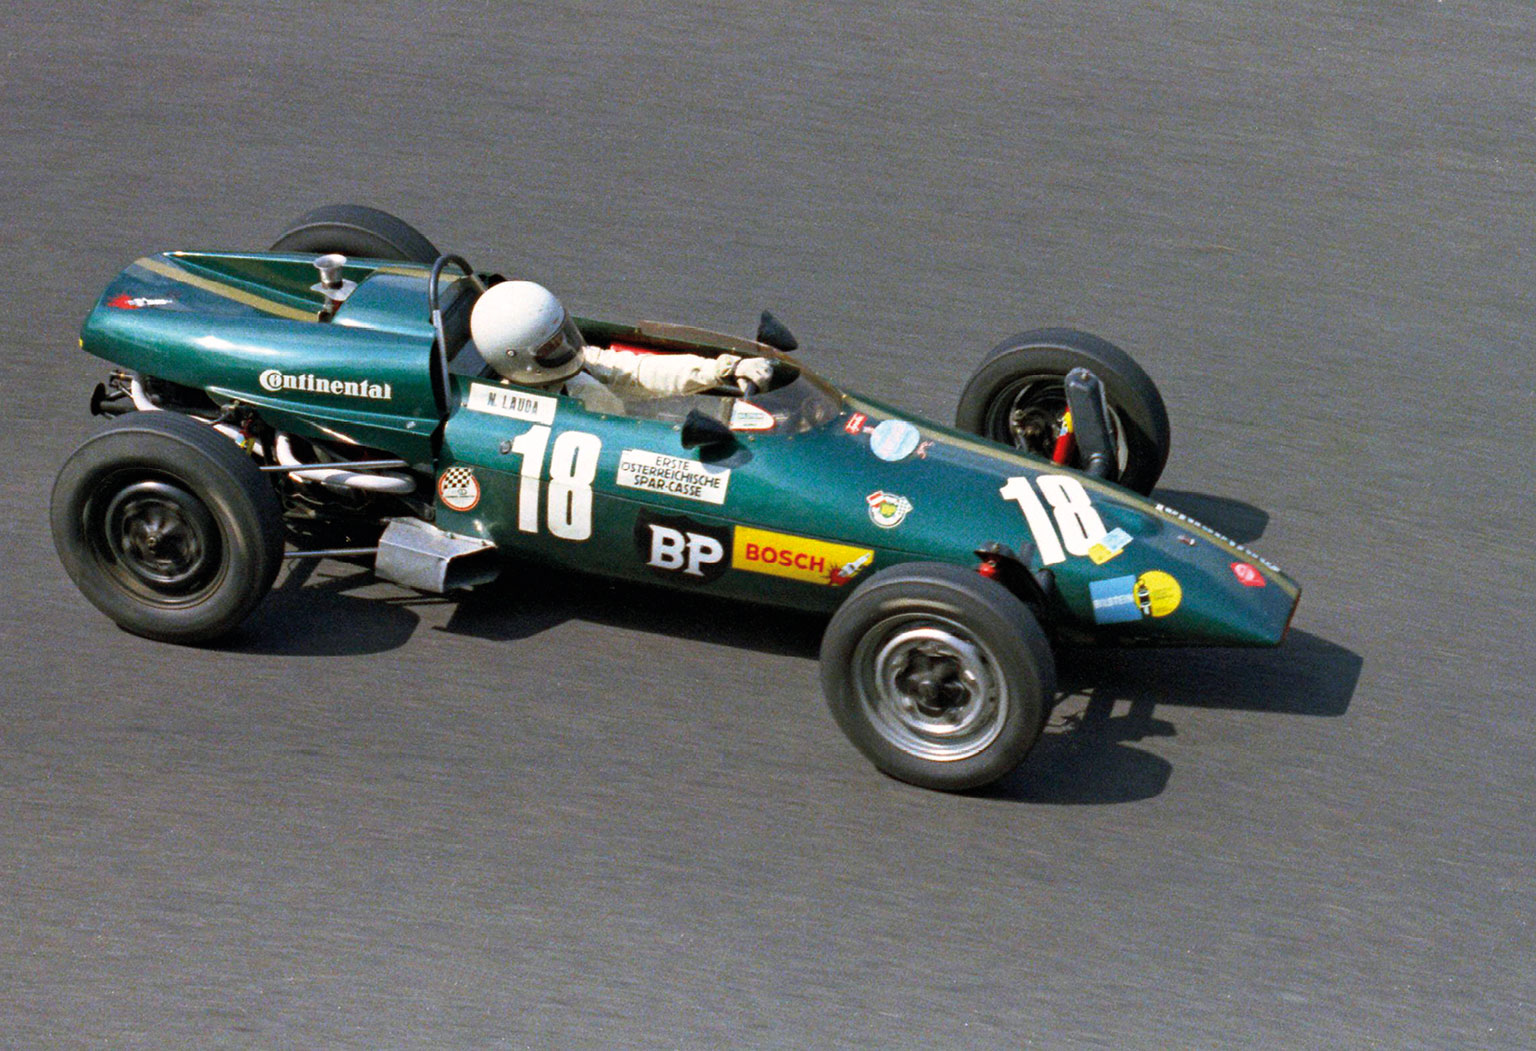 Lauda's first single-seater exploits came in a works Kaimann Formula Vee, where he battled hard with Helmut Marko